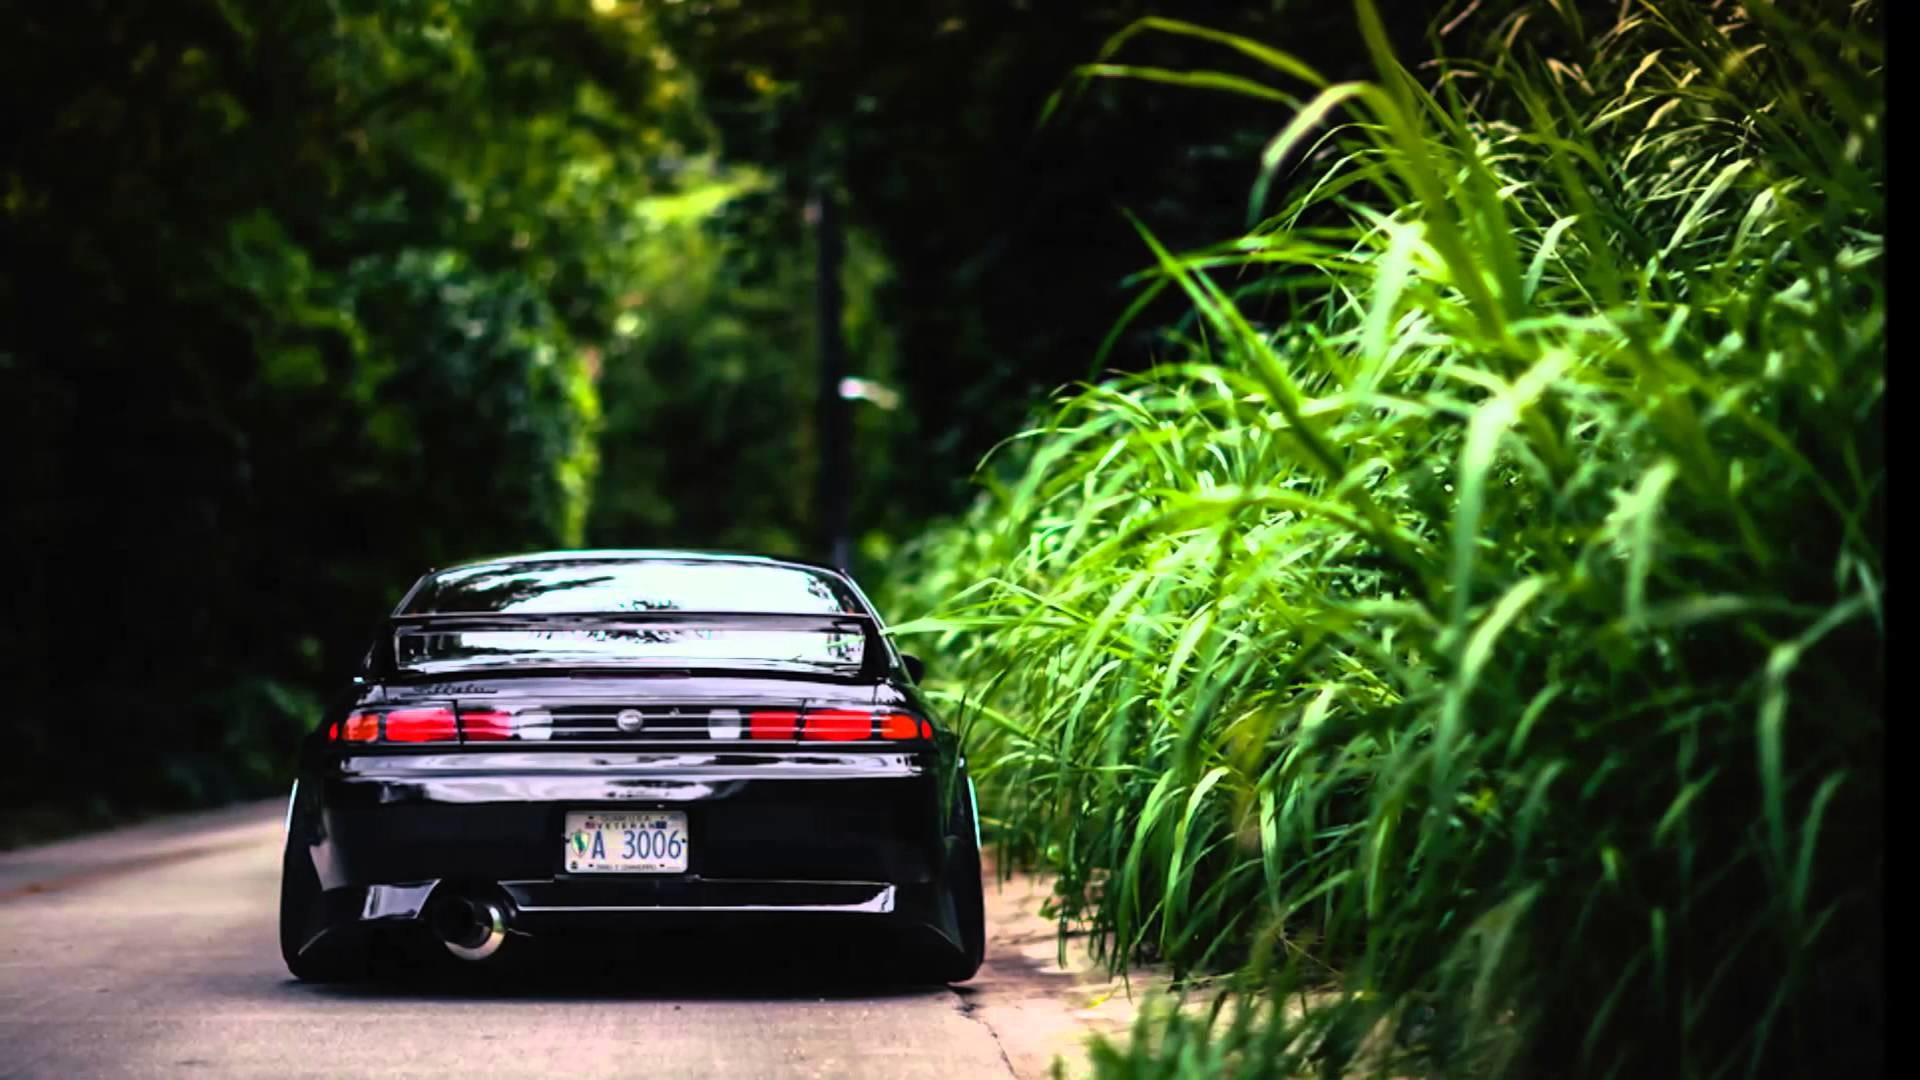 S13 wallpapers 69 background pictures - Nissan silvia s13 wallpaper ...